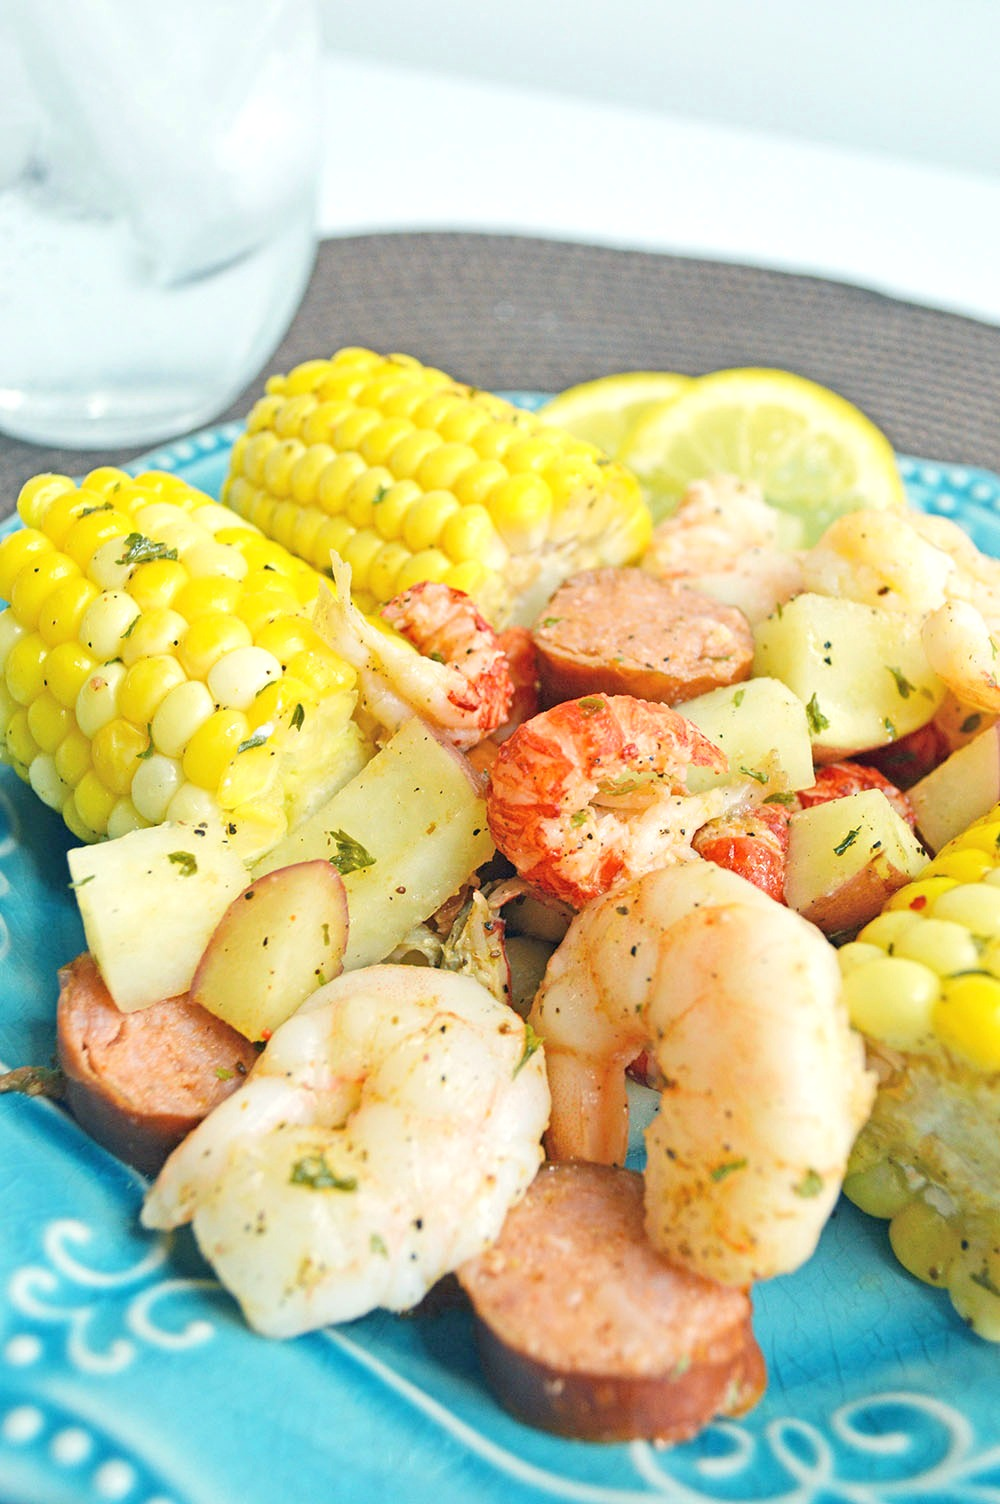 This tasty Cajun Seafood Boil Foil Packets recipe is a delicious meal that calls for very little prep and even less clean-up!